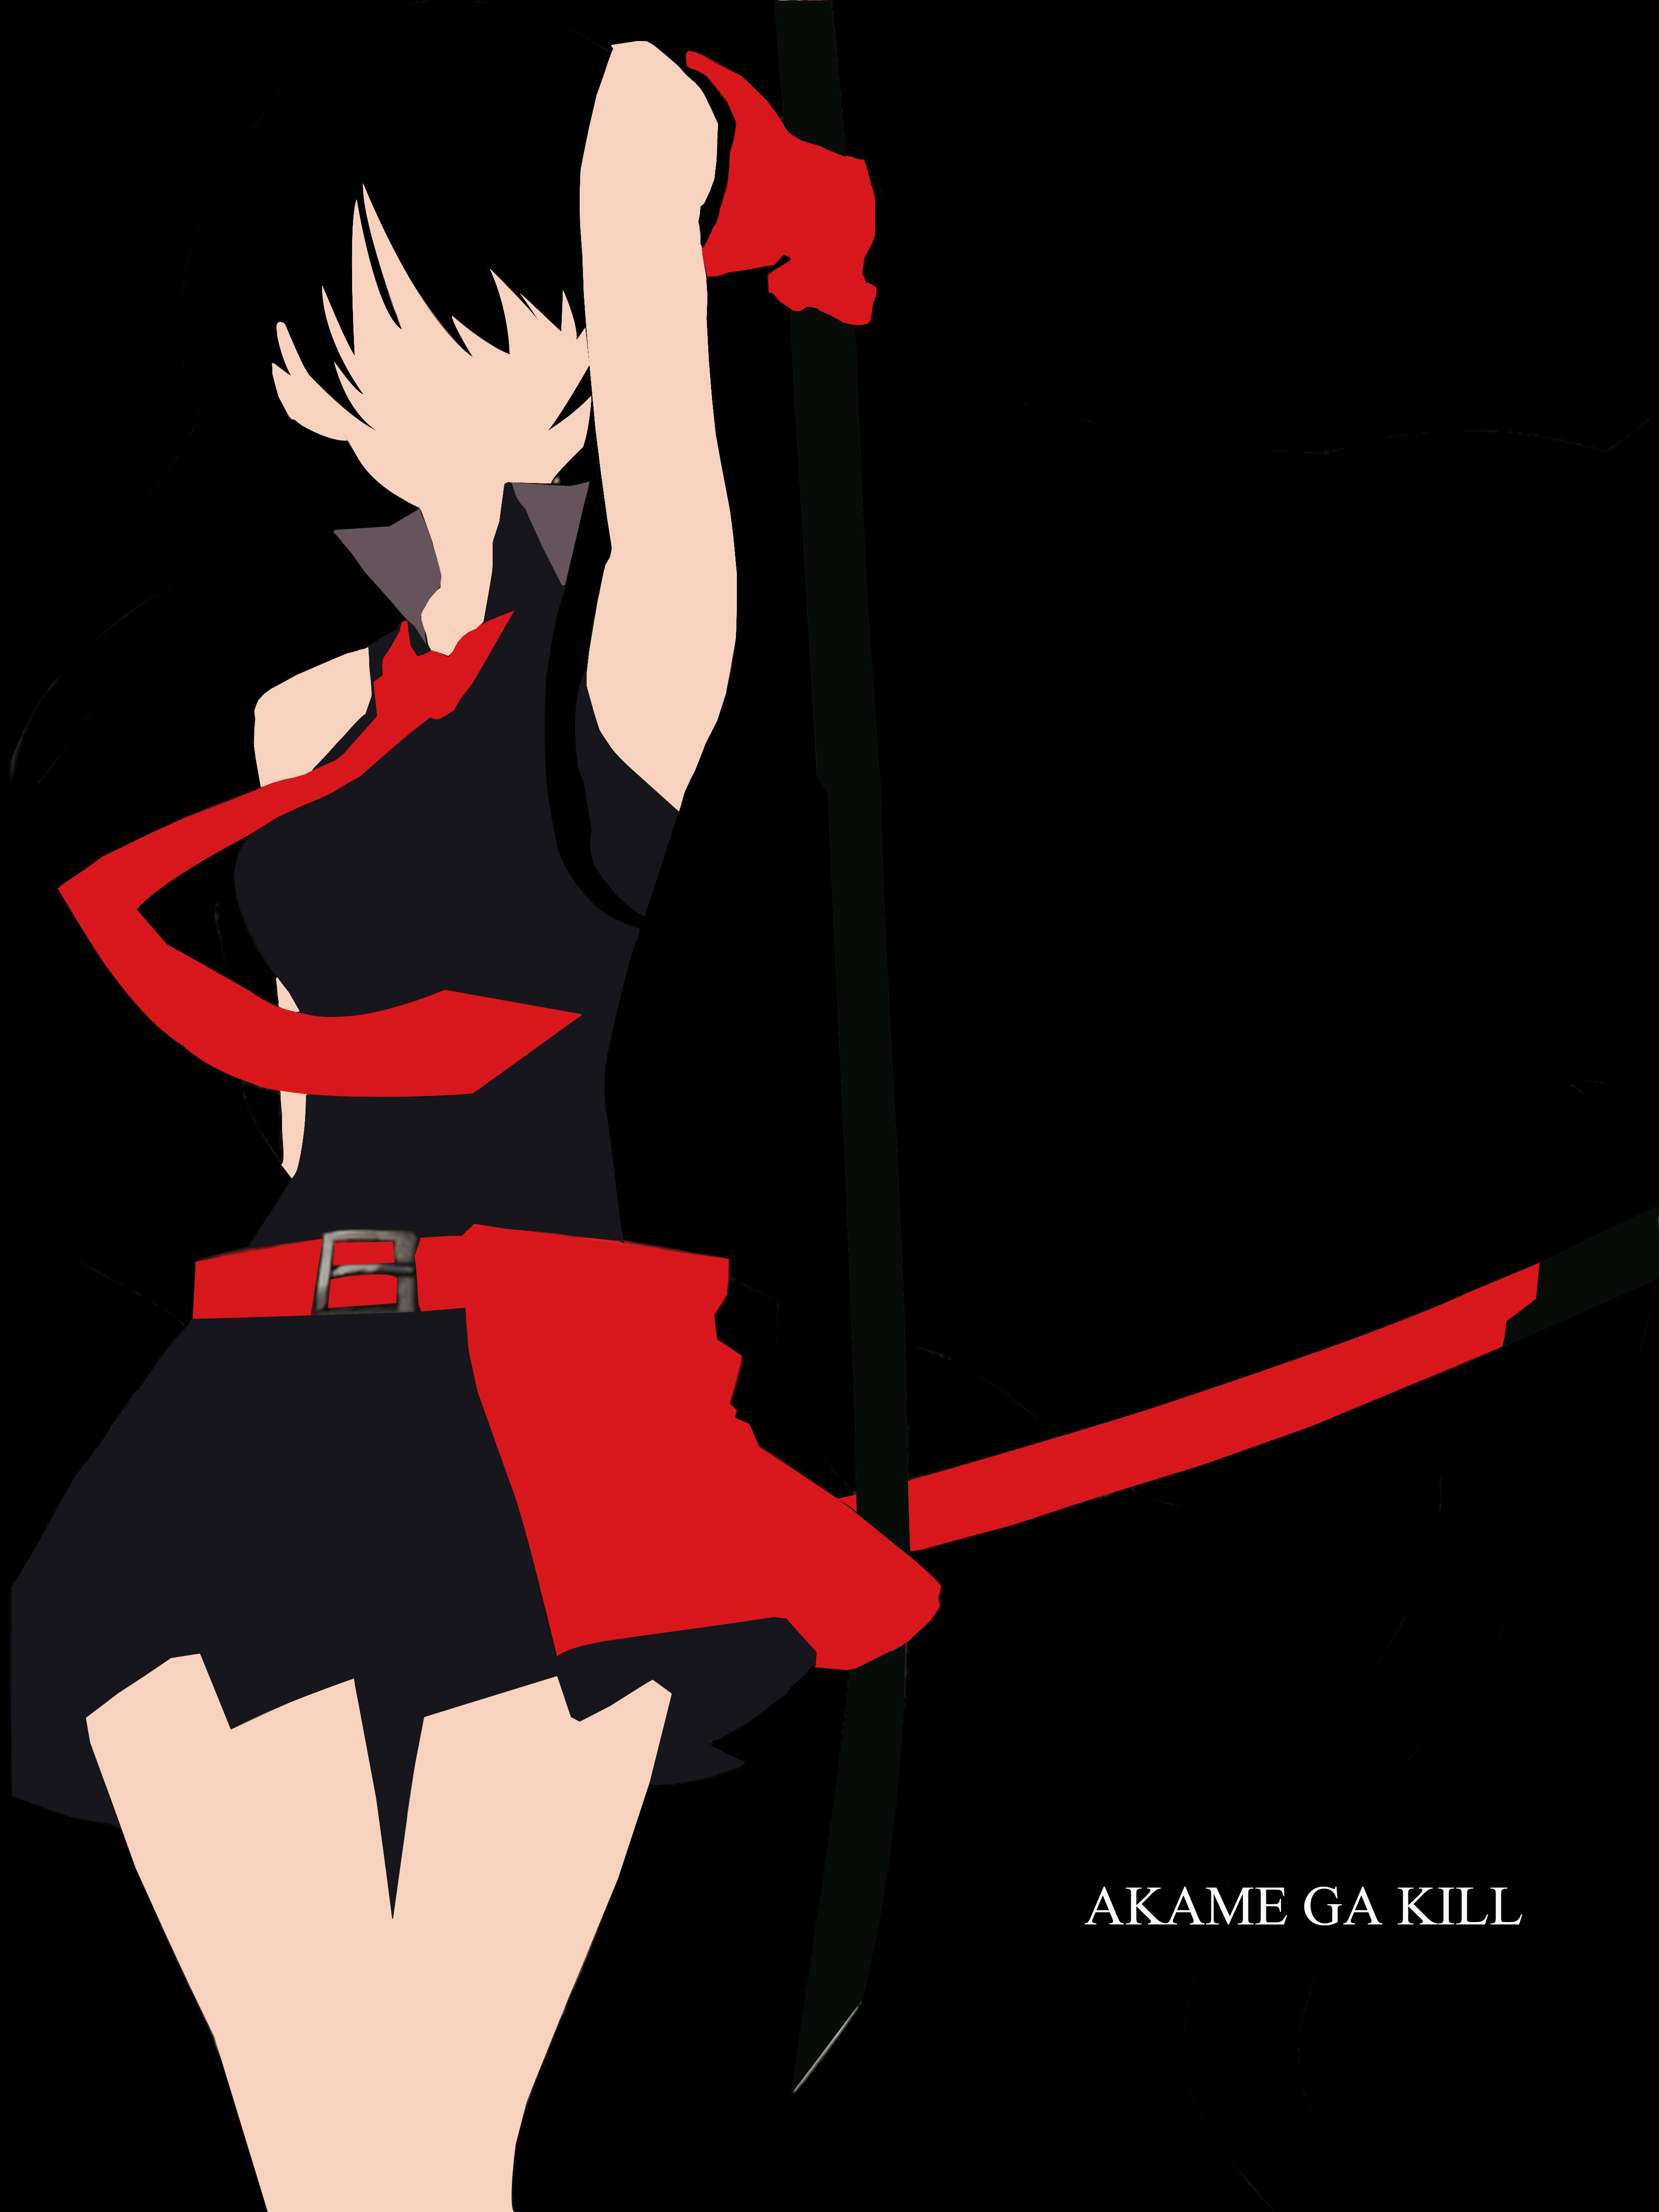 Akame Akame ga Kill A vector art by your's truly. A